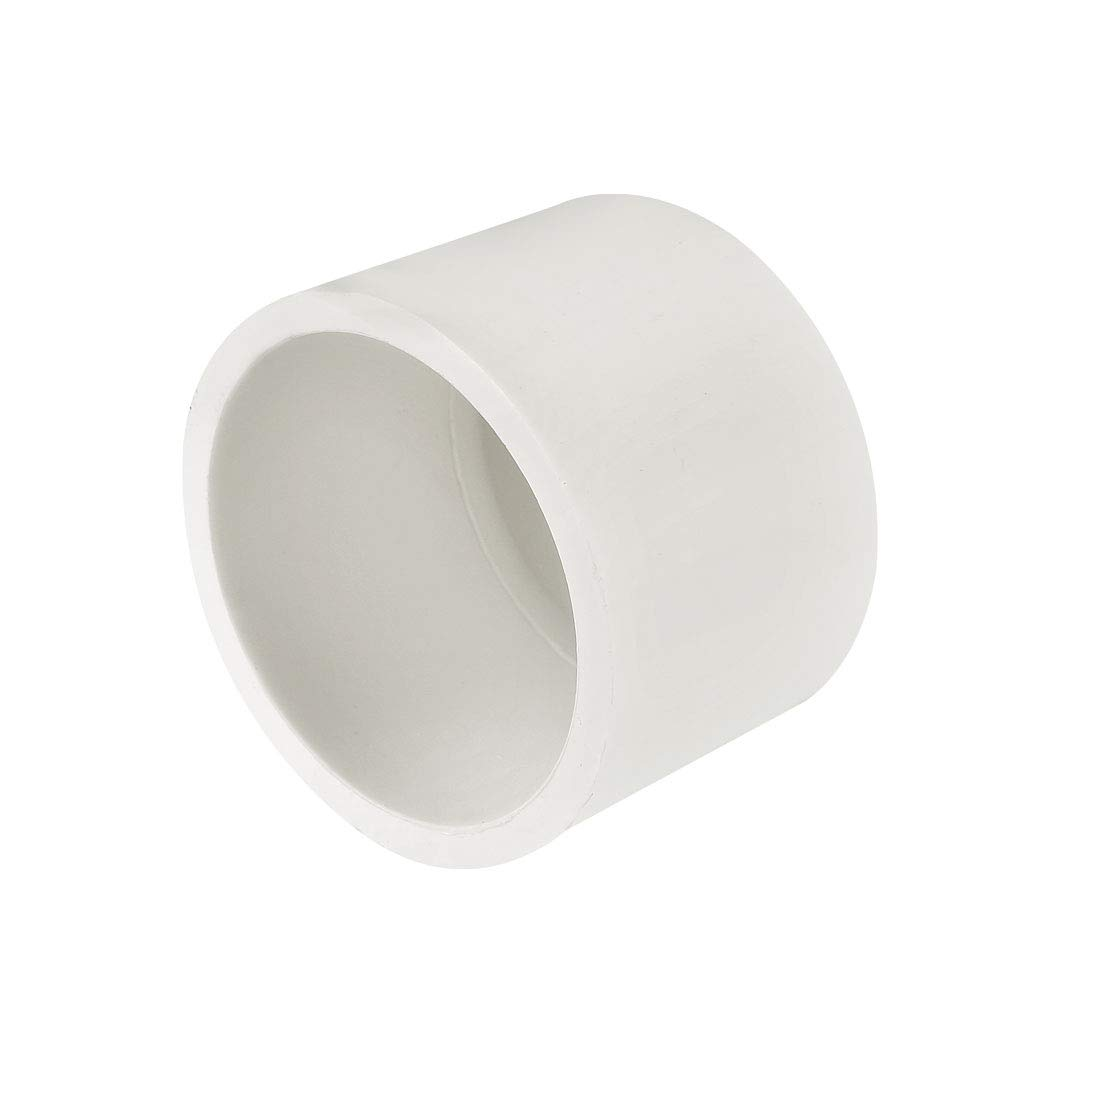 uxcell 25mm PVC Pipe Cap Fitting Slip Socket External End Caps 5 Pcs